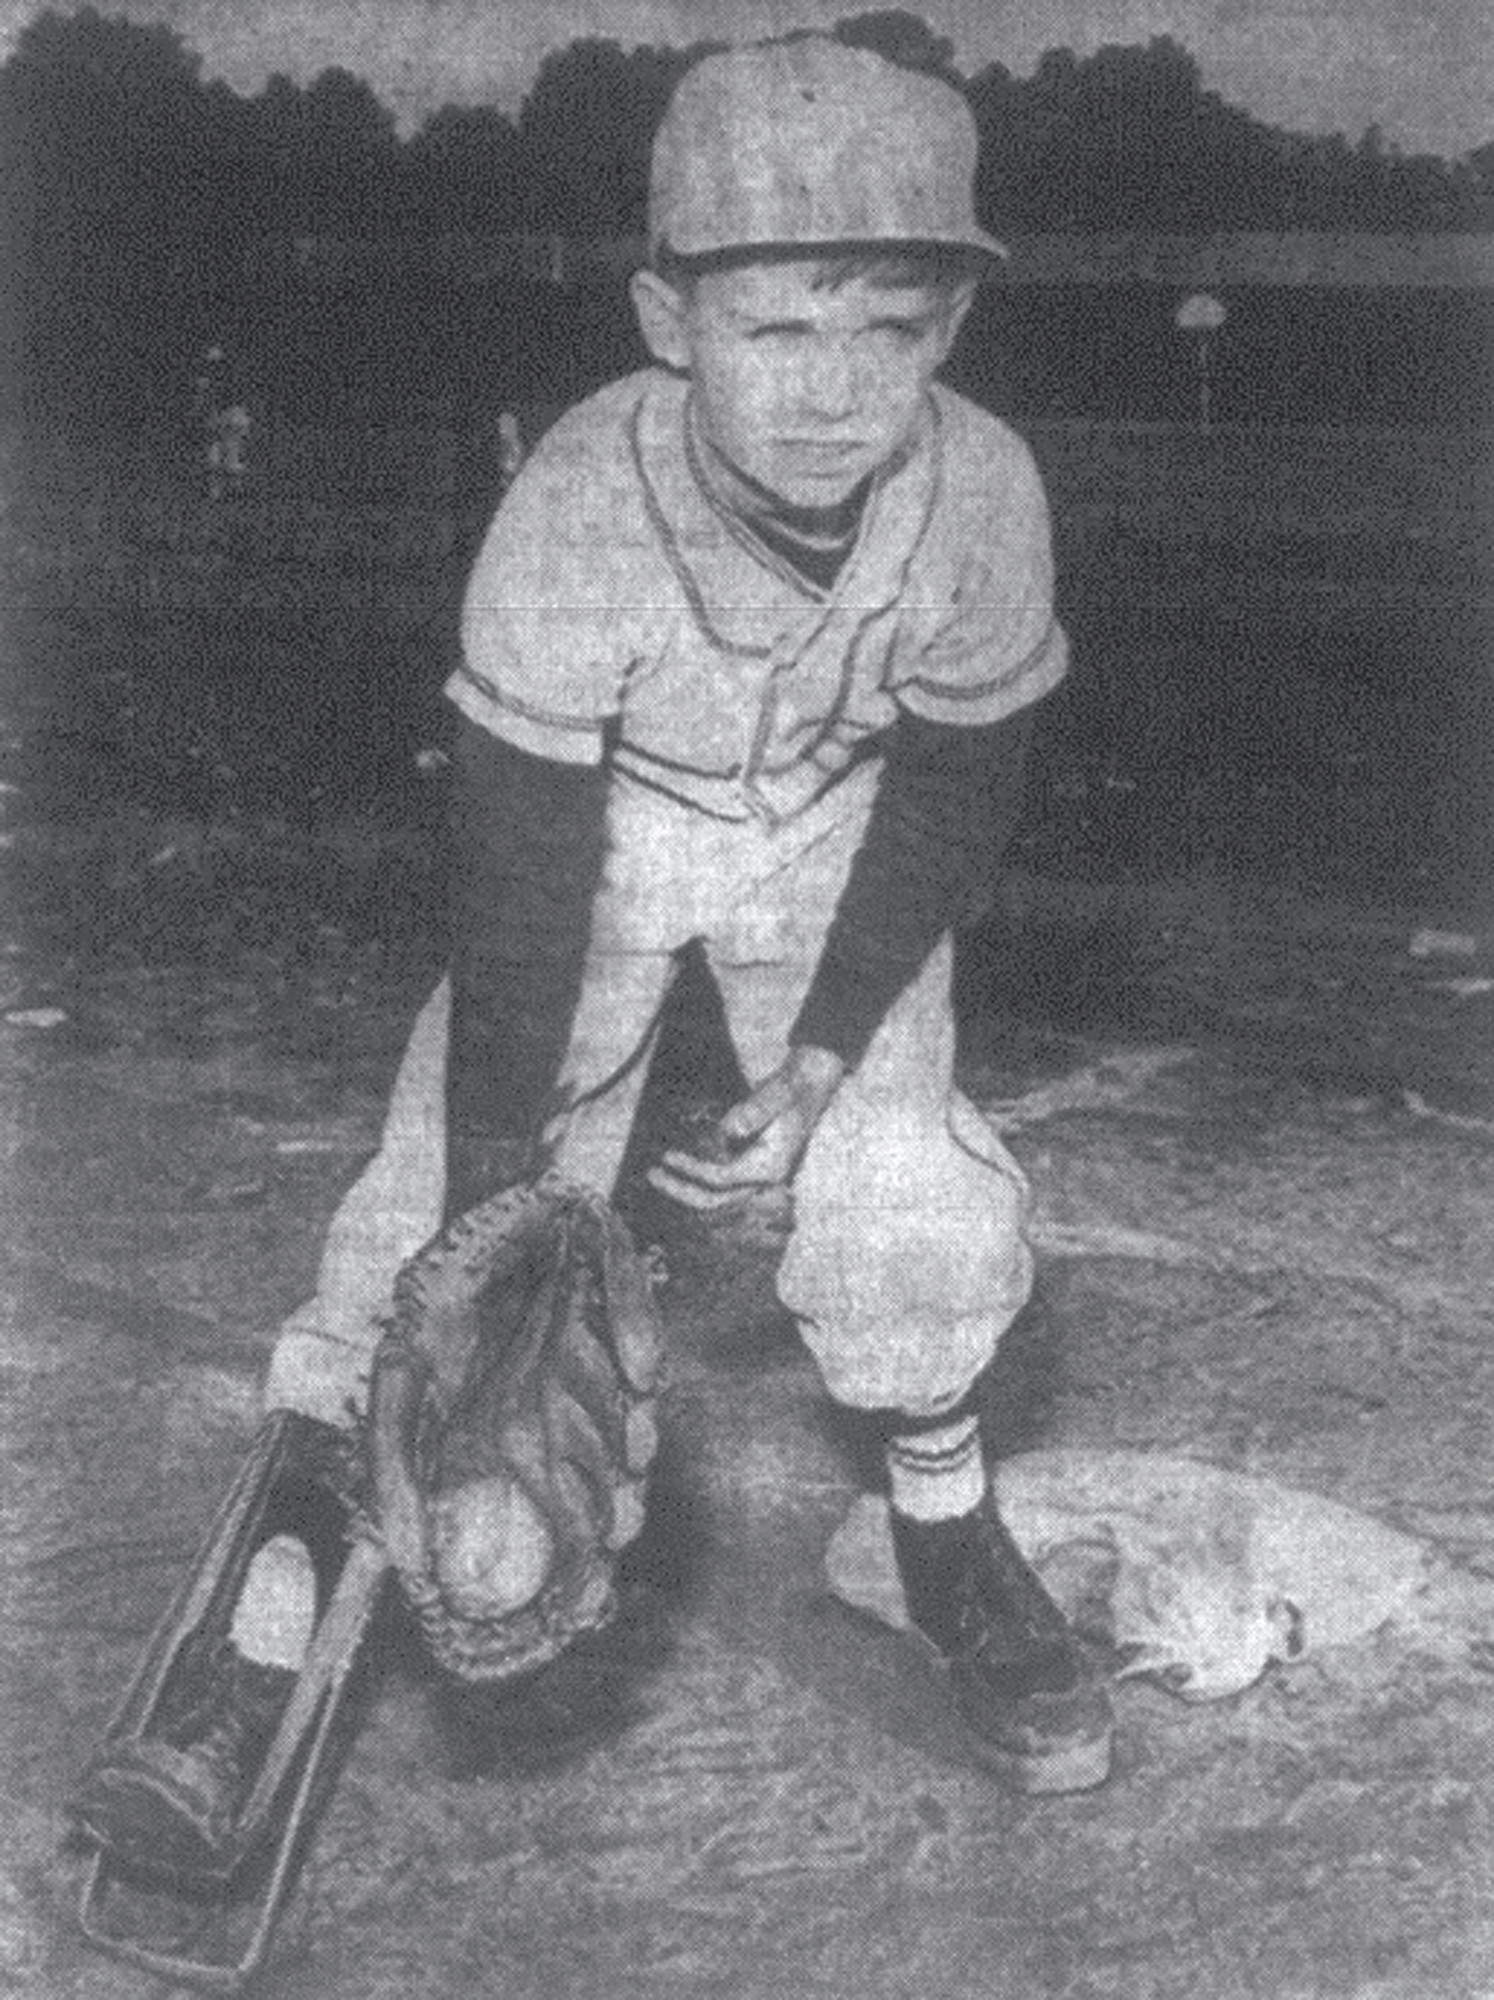 1968 - Larry Goff didn't give up baseball just because he had a brace the length of his leg. He became Santee Print's first baseman, a position he has covered well while compiling a two-year record of perfect attendance.